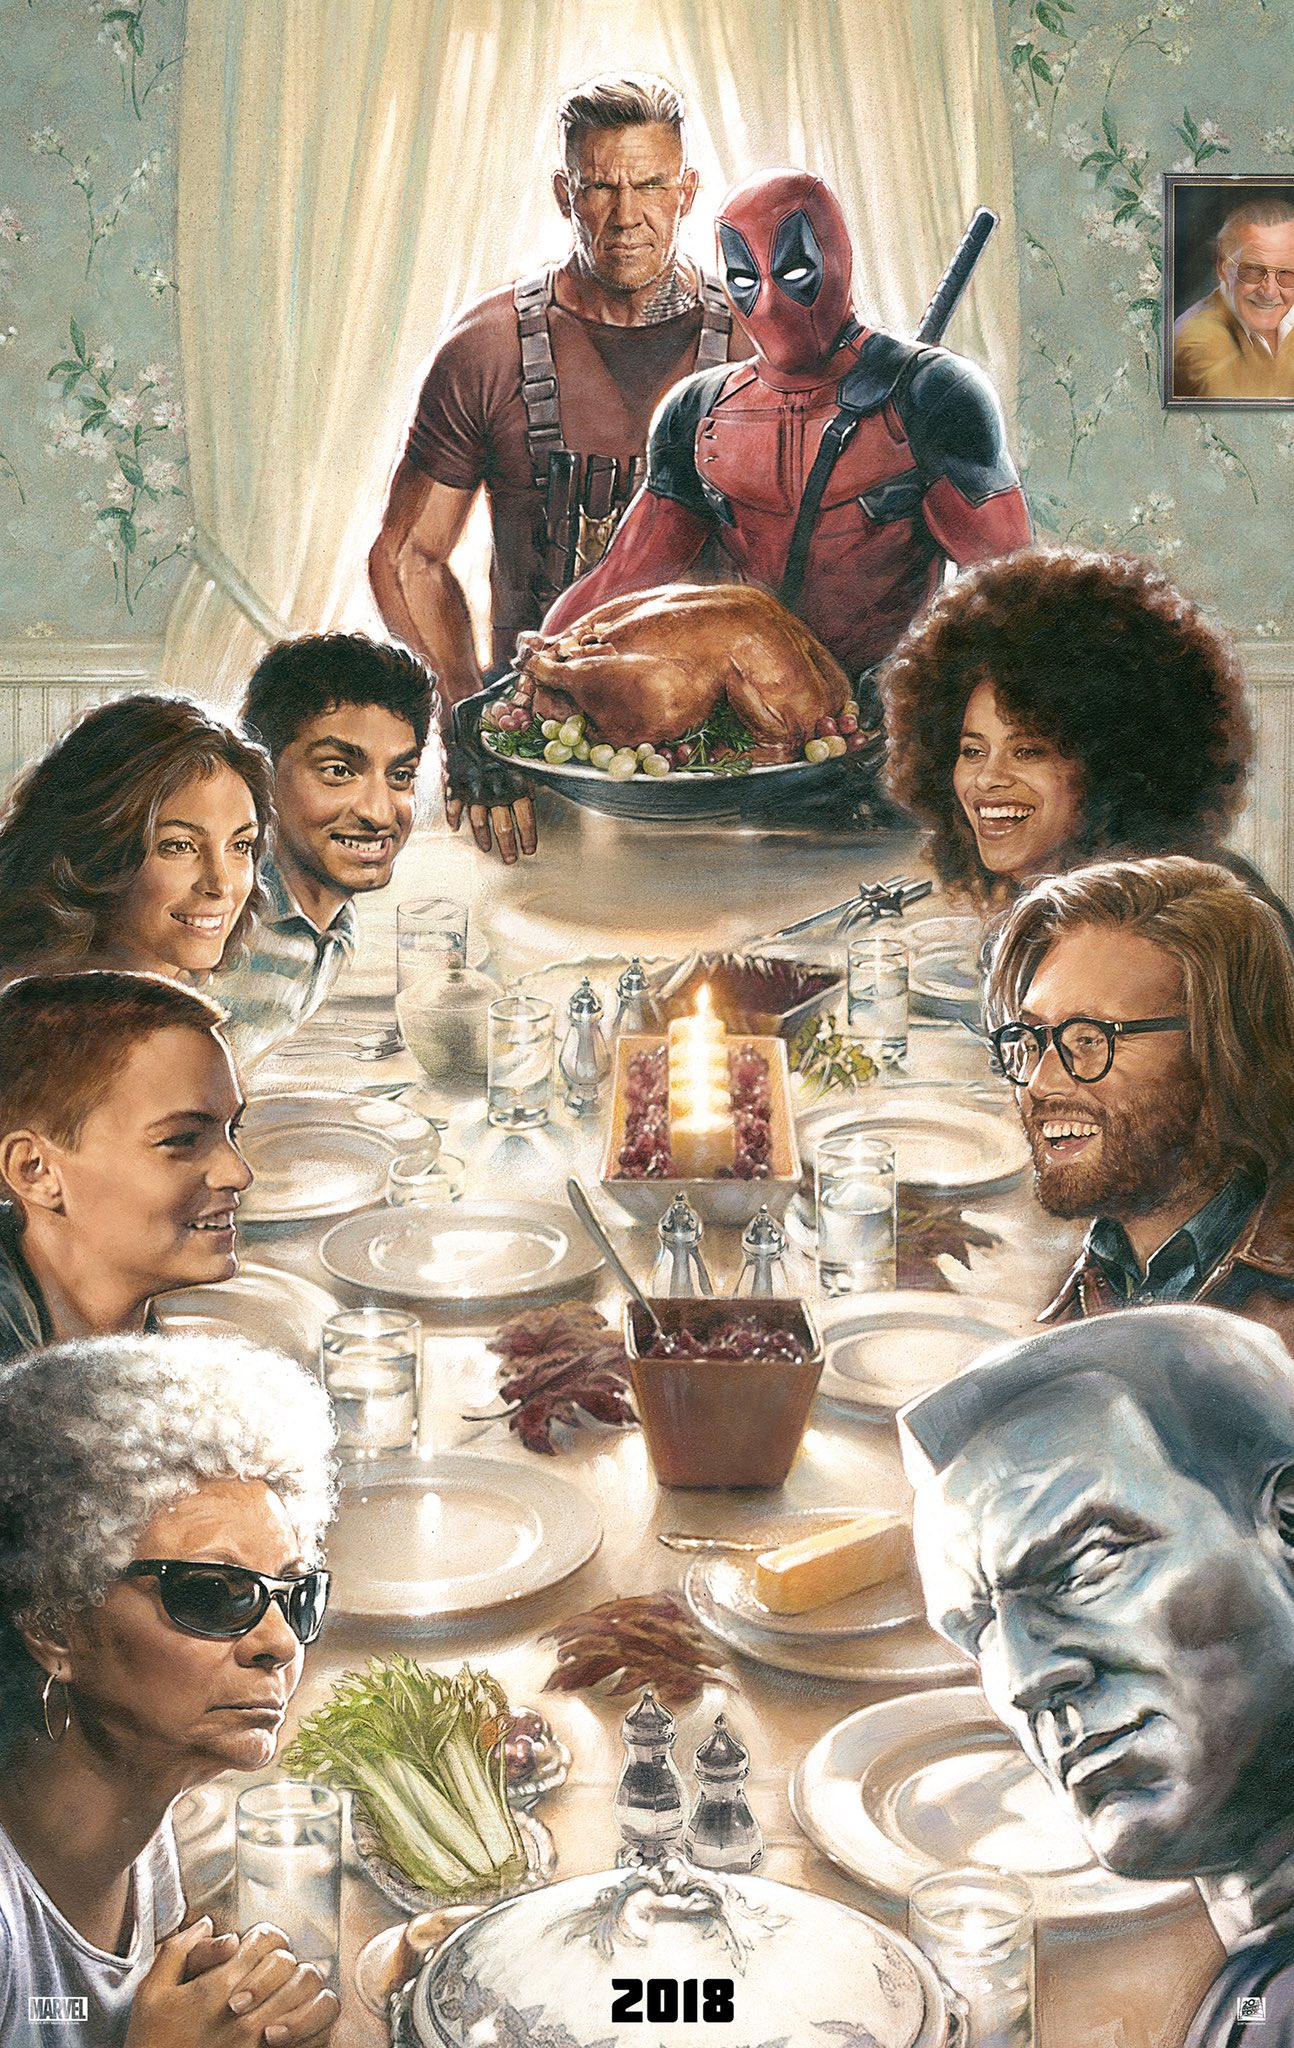 Thanksgiving in our house is a glorious, non-stop car accident set to the music of cocaine. https://t.co/ngCdgtpgct